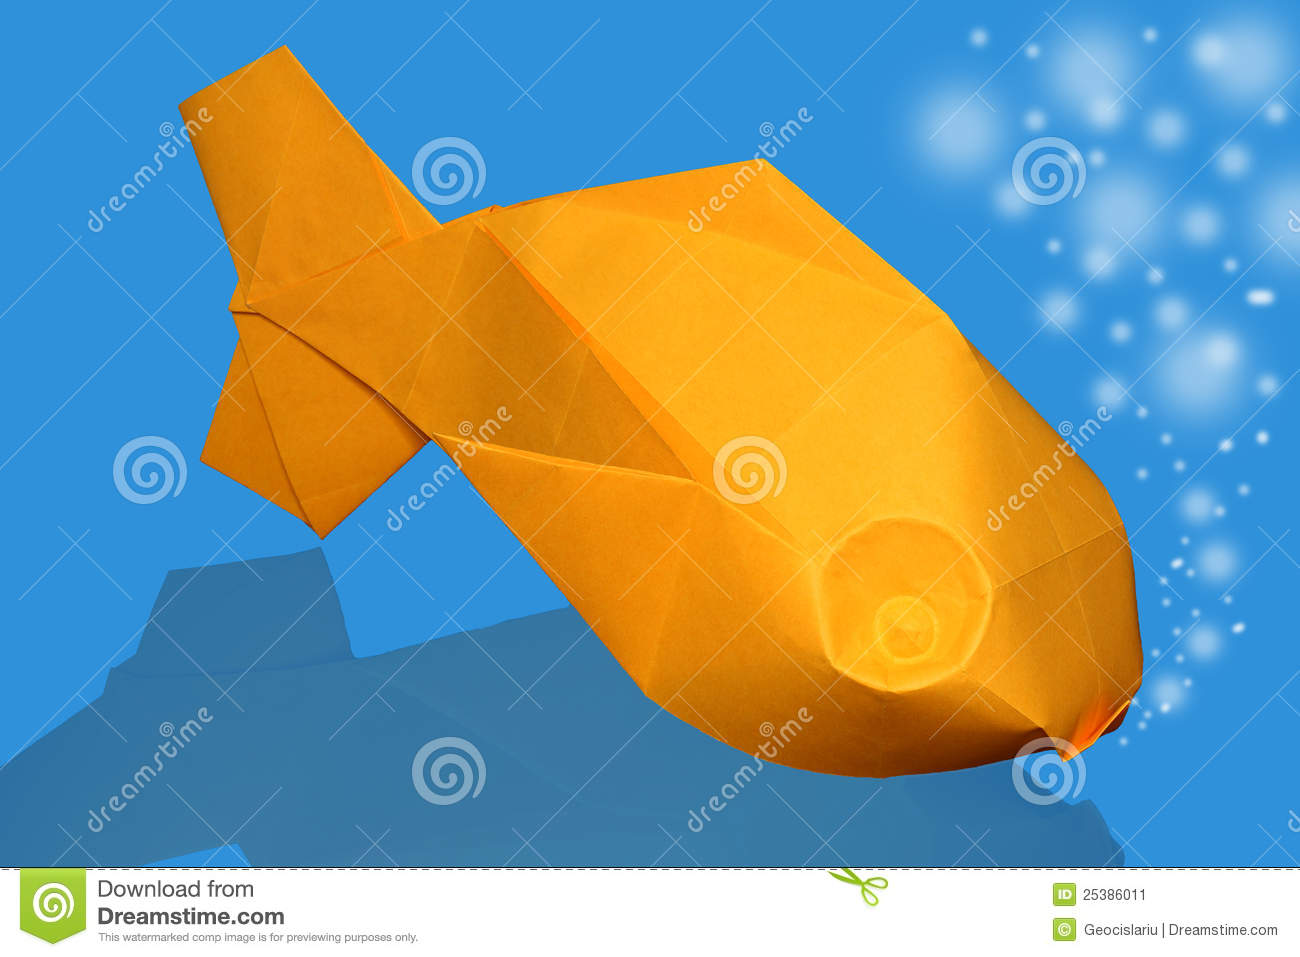 Origami fish stock image. Image of abstract, colorful ... - photo#49